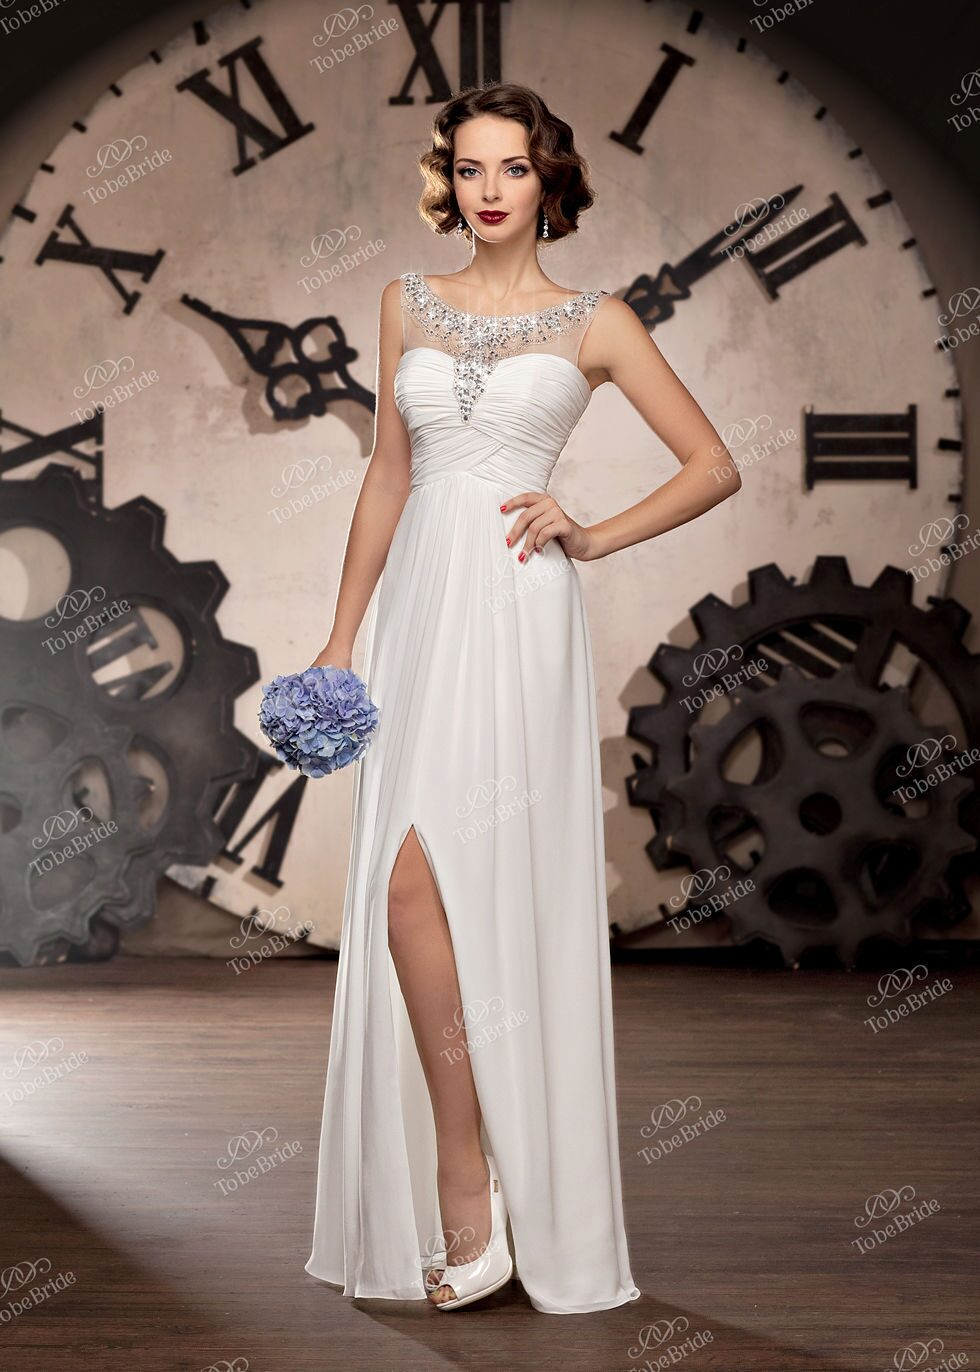 06450 р. to be bride BB391 размер 48 - 50